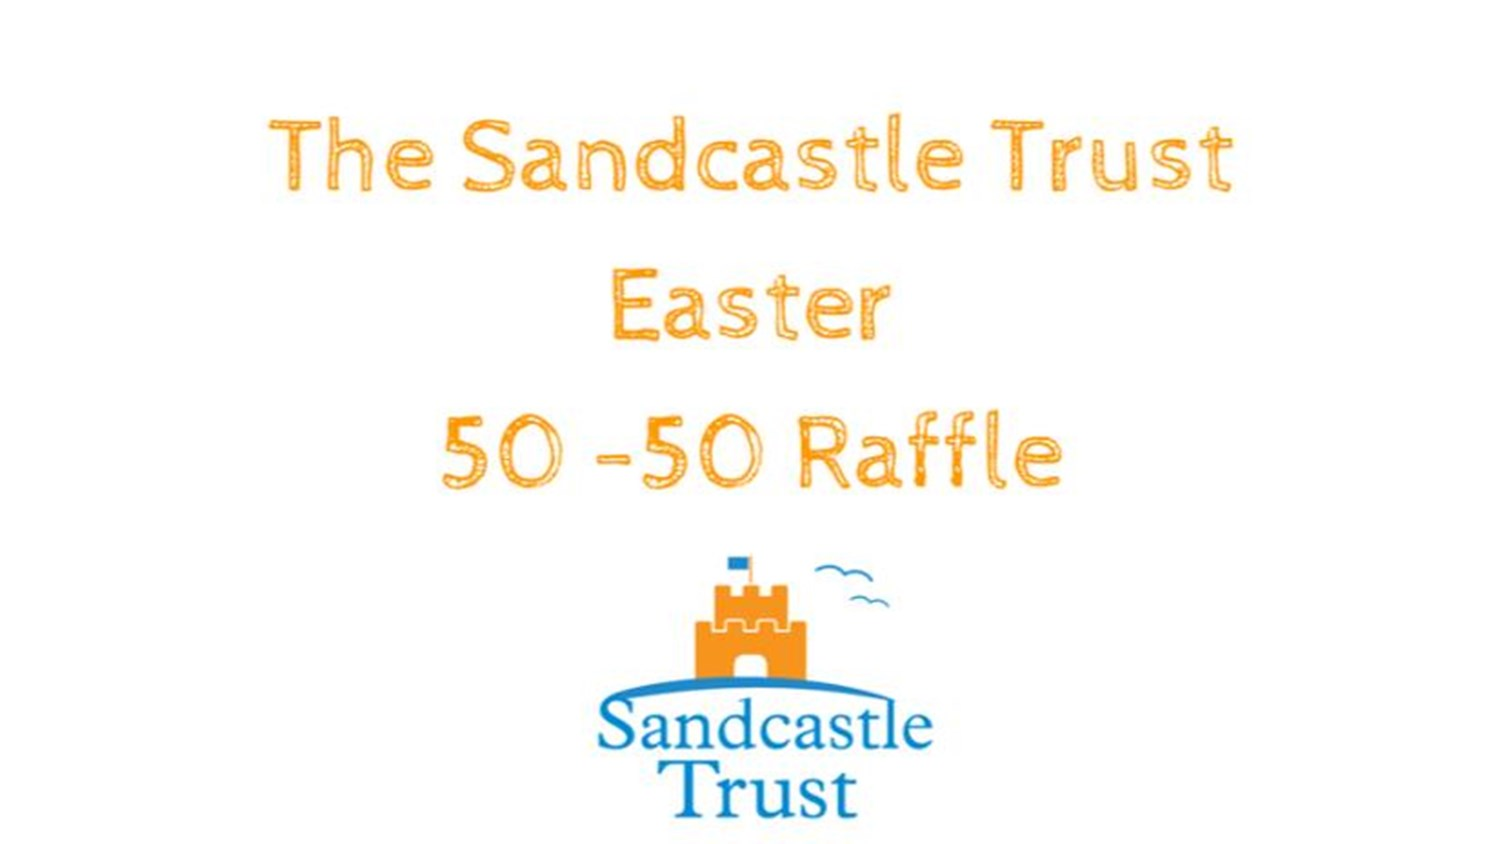 The Sandcastle Trust Easter 50-50 Raffle - JustGiving